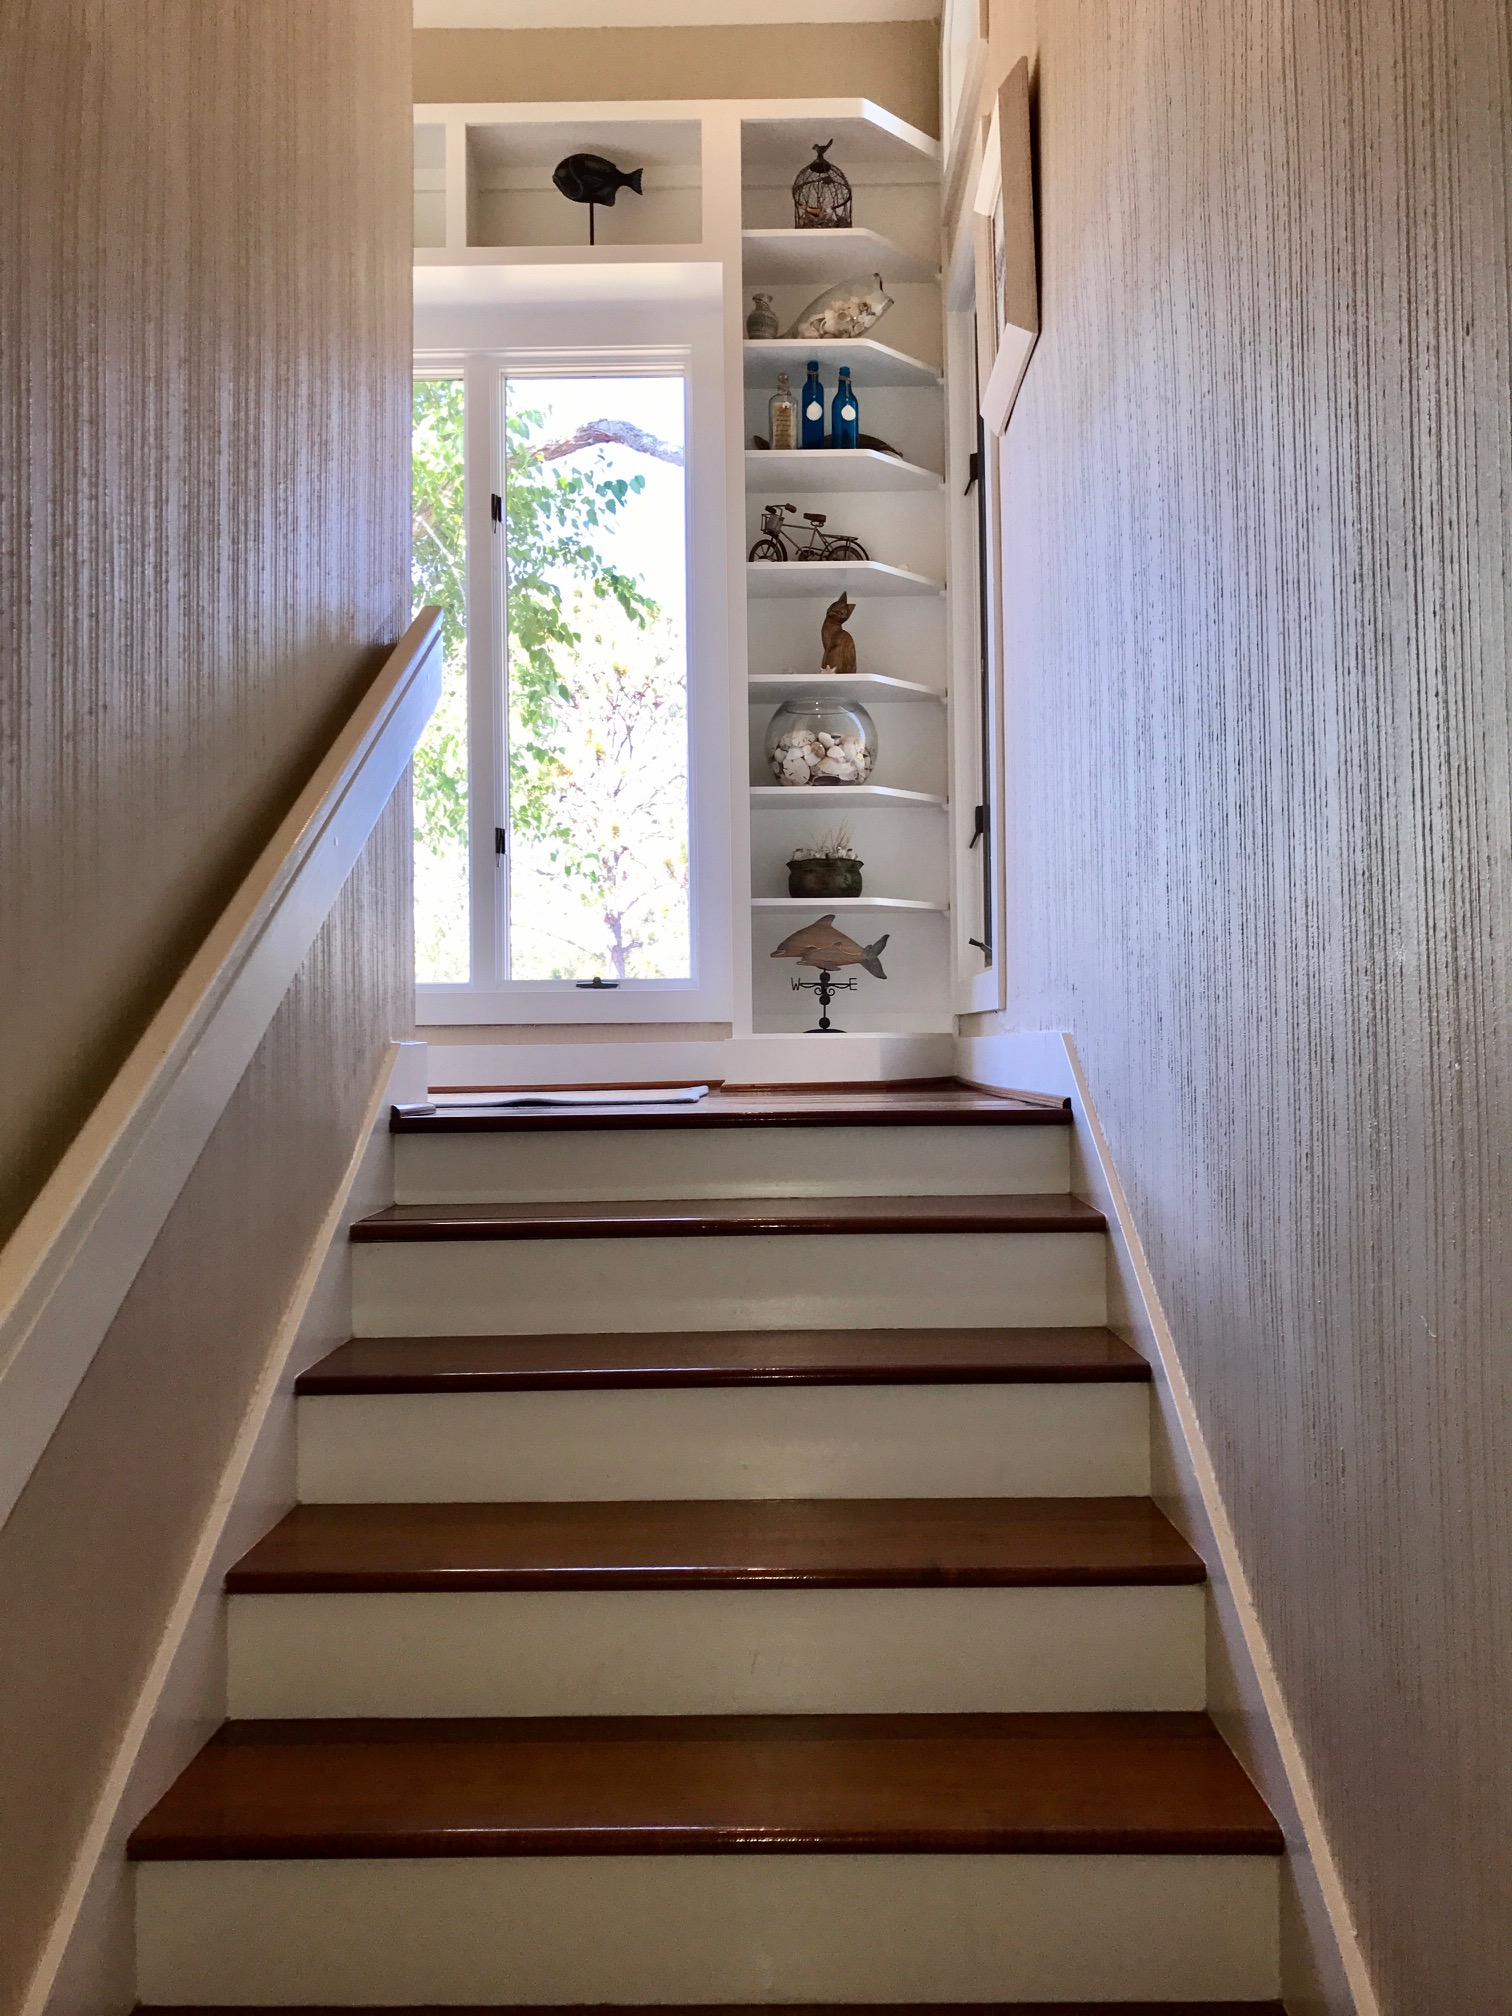 This home has a reverse floor plan to take advantage of the views. Take the stairs to the main living area on the second floor.